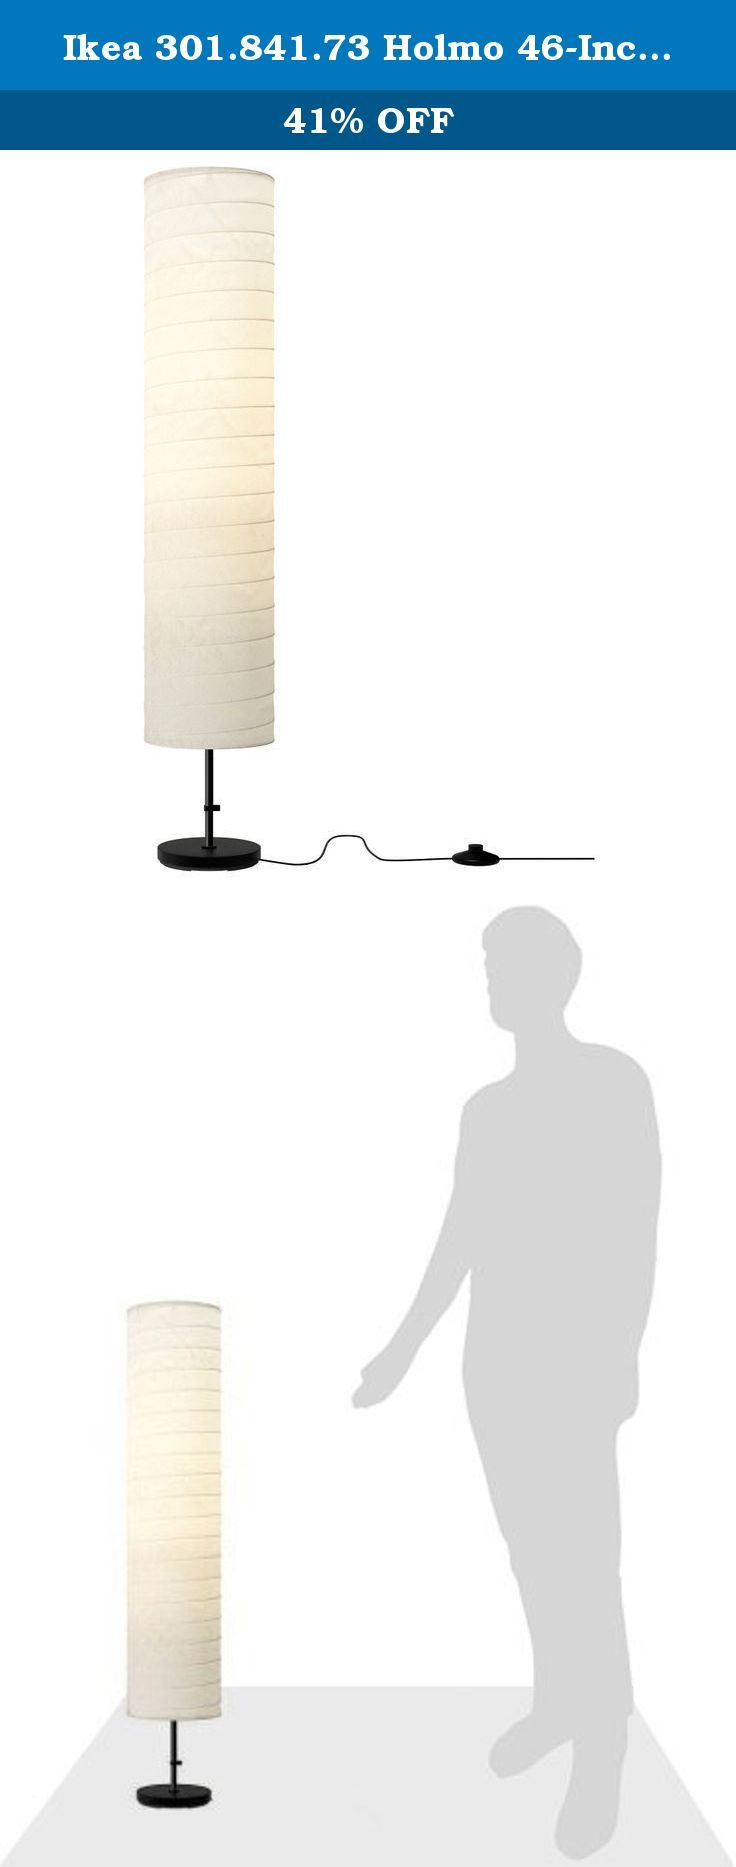 "Ikea 301.841.73 Holmo 46-Inch Floor Lamp. Good to know: Light bulb sold separately, Product description, Base: Polyethylene, Concrete, Cover: Polypropylene, Expander/Tube: Steel, Powder coating, Shade: Rice paper, Product dimensions, Height: 46 "", Shade diameter: 9 "", Cord length: 9 ' 2, No Bulbs Included. IKEA recommends LEDARE LED bulb E26 400 lumen.Product description . Base: Polyethylene, Concrete , Cover: Polypropylene , Expander/ Tube: Steel, Powder coating and Shade: Rice paper."